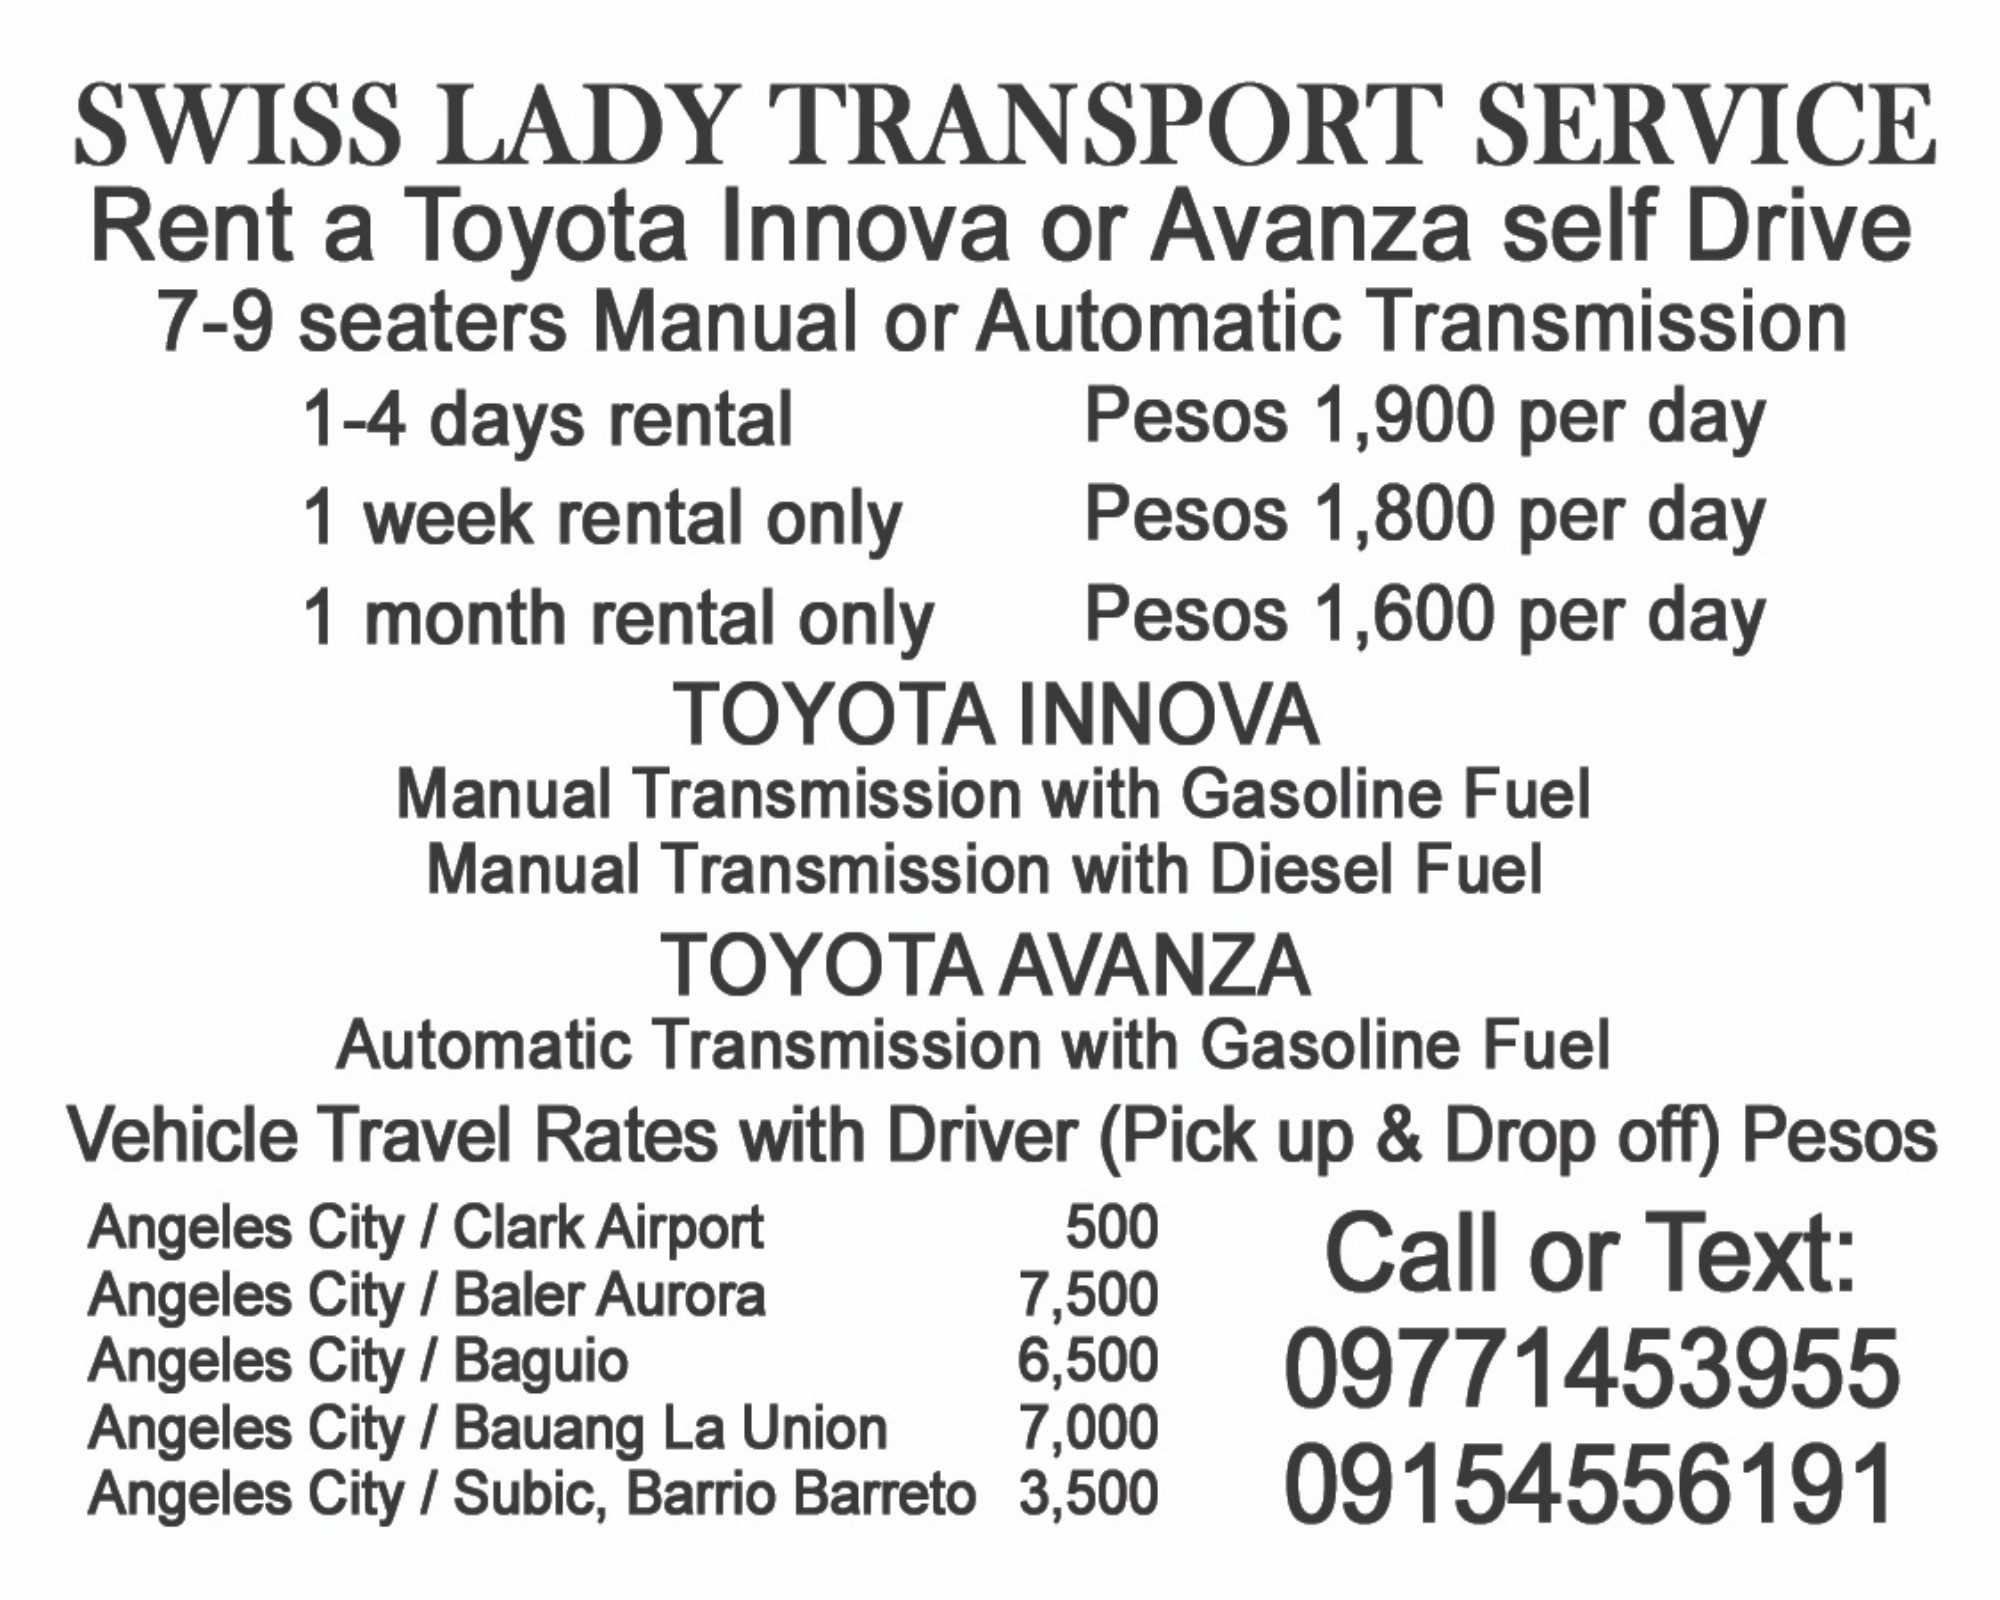 Swiss Lady Transport Service